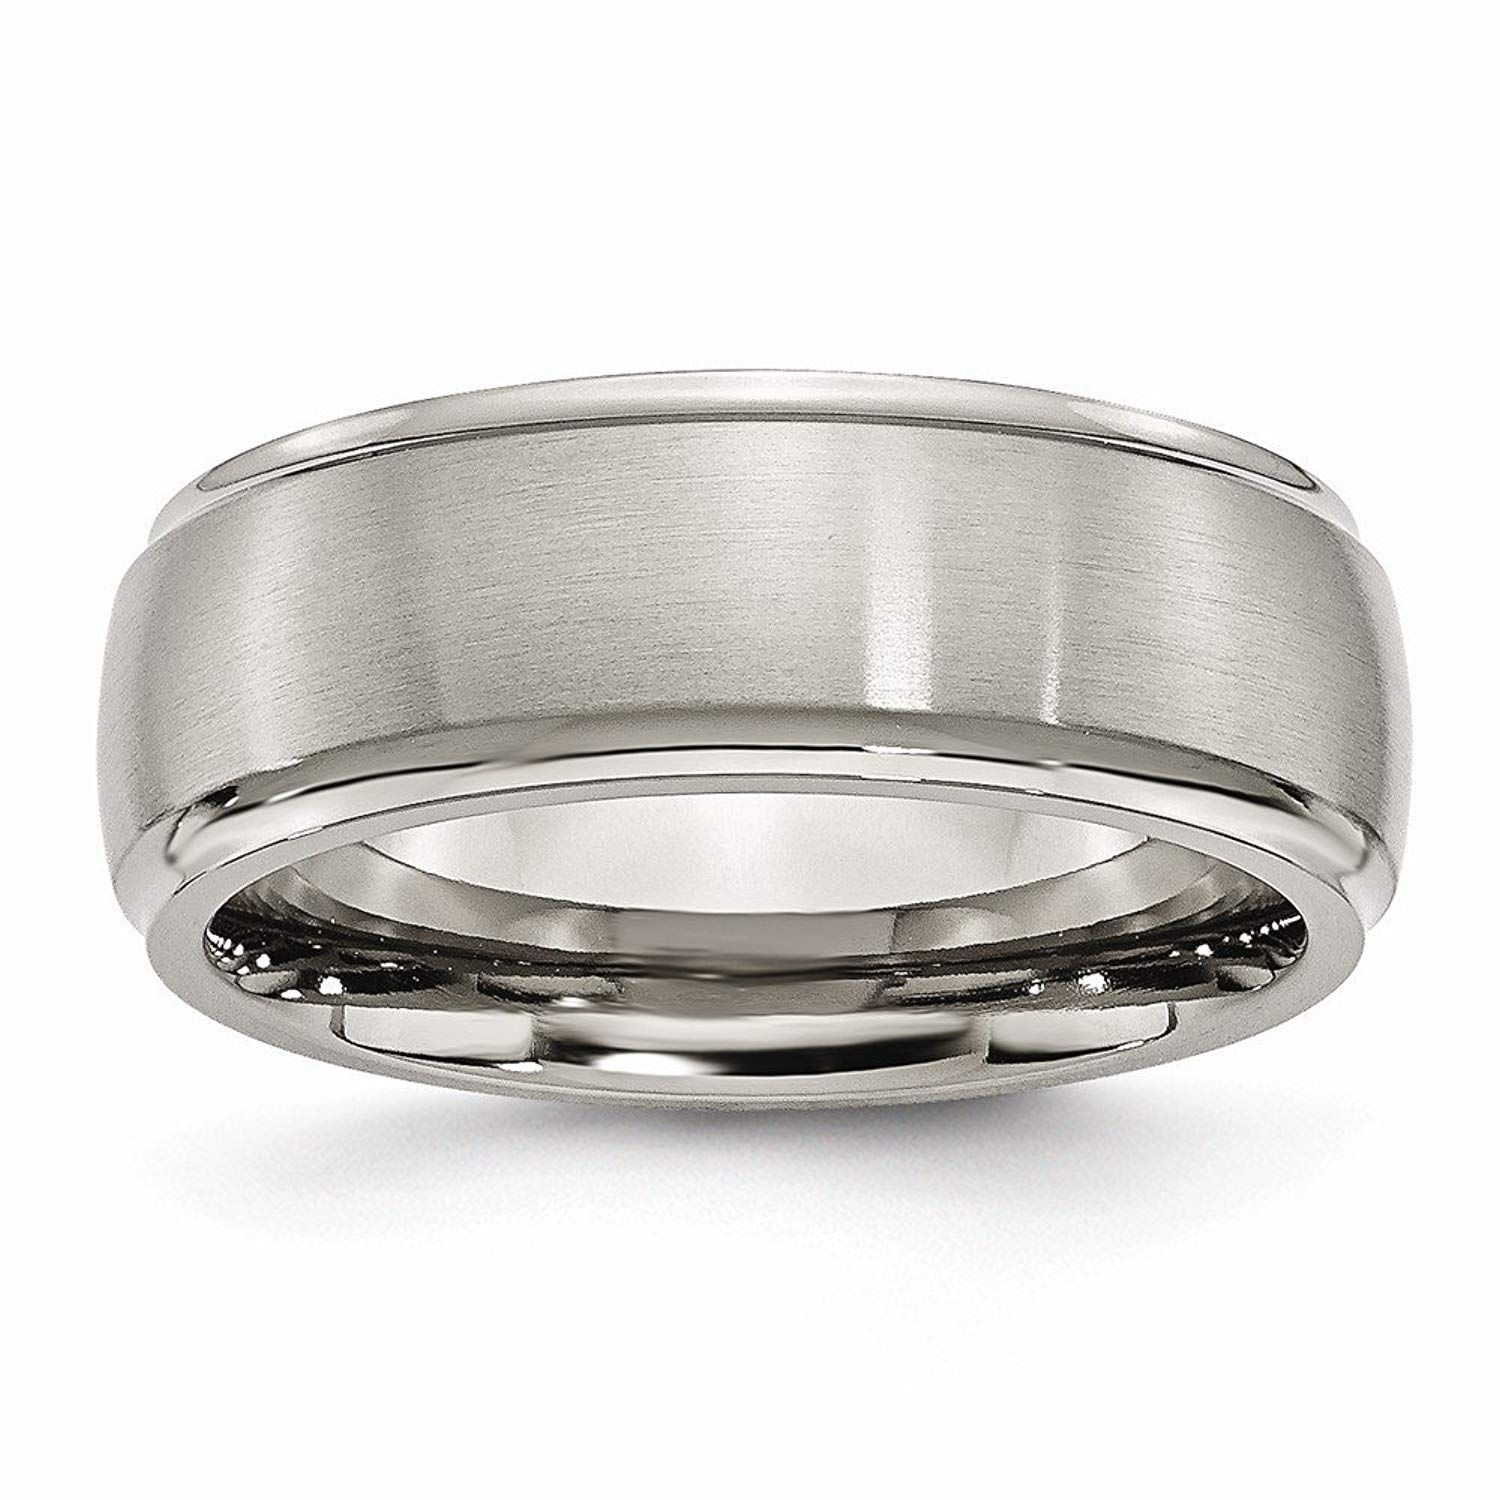 Bridal Titanium Ridged Edge 6mm Polished Band